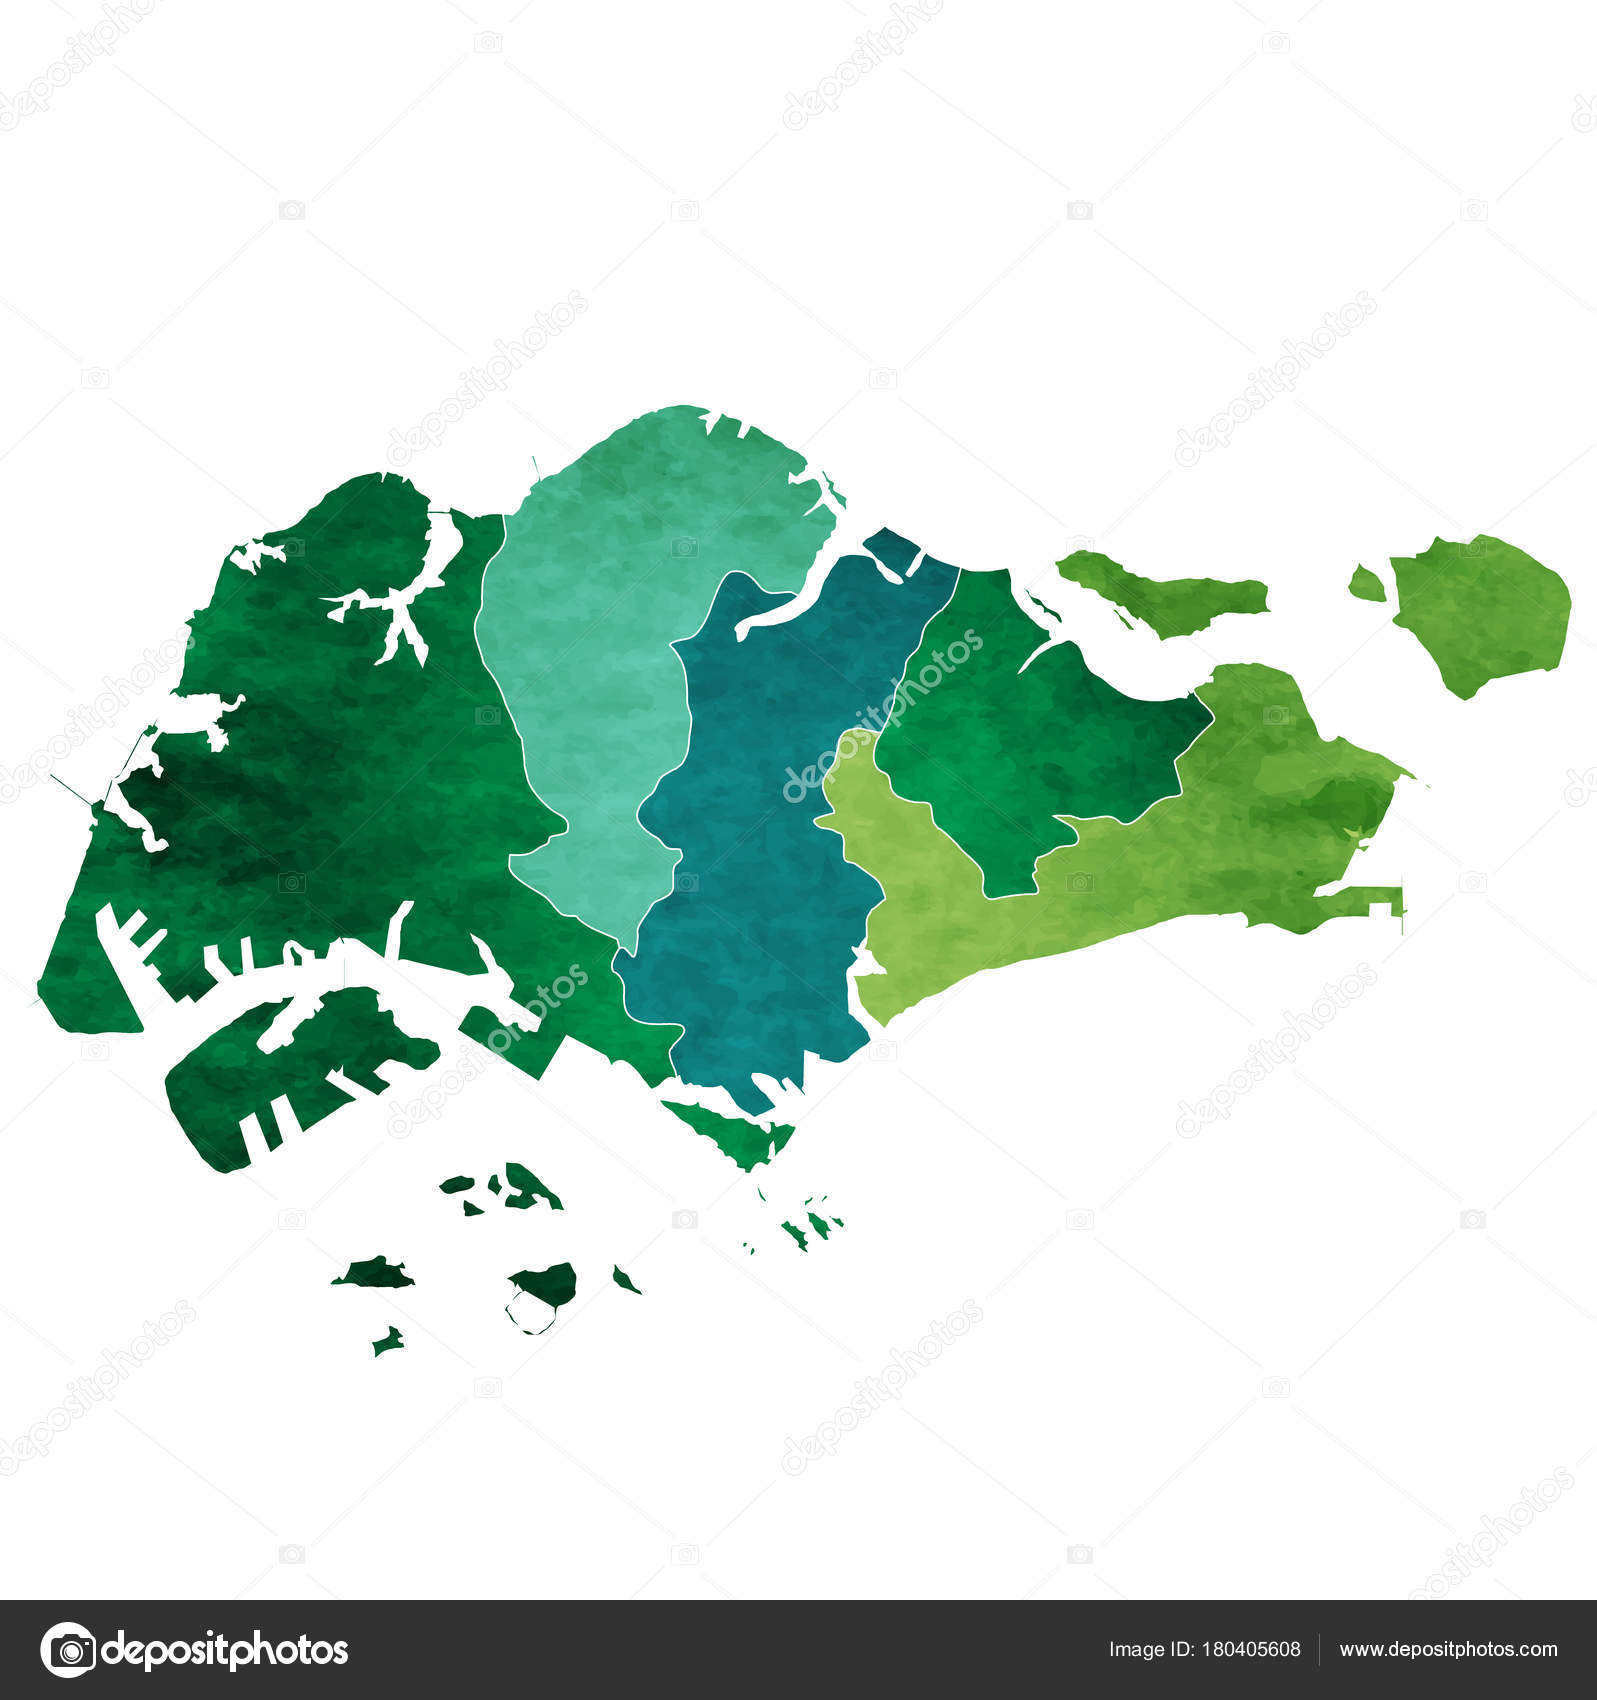 Singapore World Map Country Icon — Stock Vector © JBOY24 ... on south africa on world map, democratic republic of congo on world map, india on world map, yangtze river on world map, thailand on world map, mecca on world map, middle east on world map, perth on world map, israel on world map, hong kong on world map, beijing on world map, kenya on world map, cape of good hope on world map, japan on world map, libya on world map, australia on world map, dubai on world map, shenzhen on world map, new guinea on world map, spain on world map,